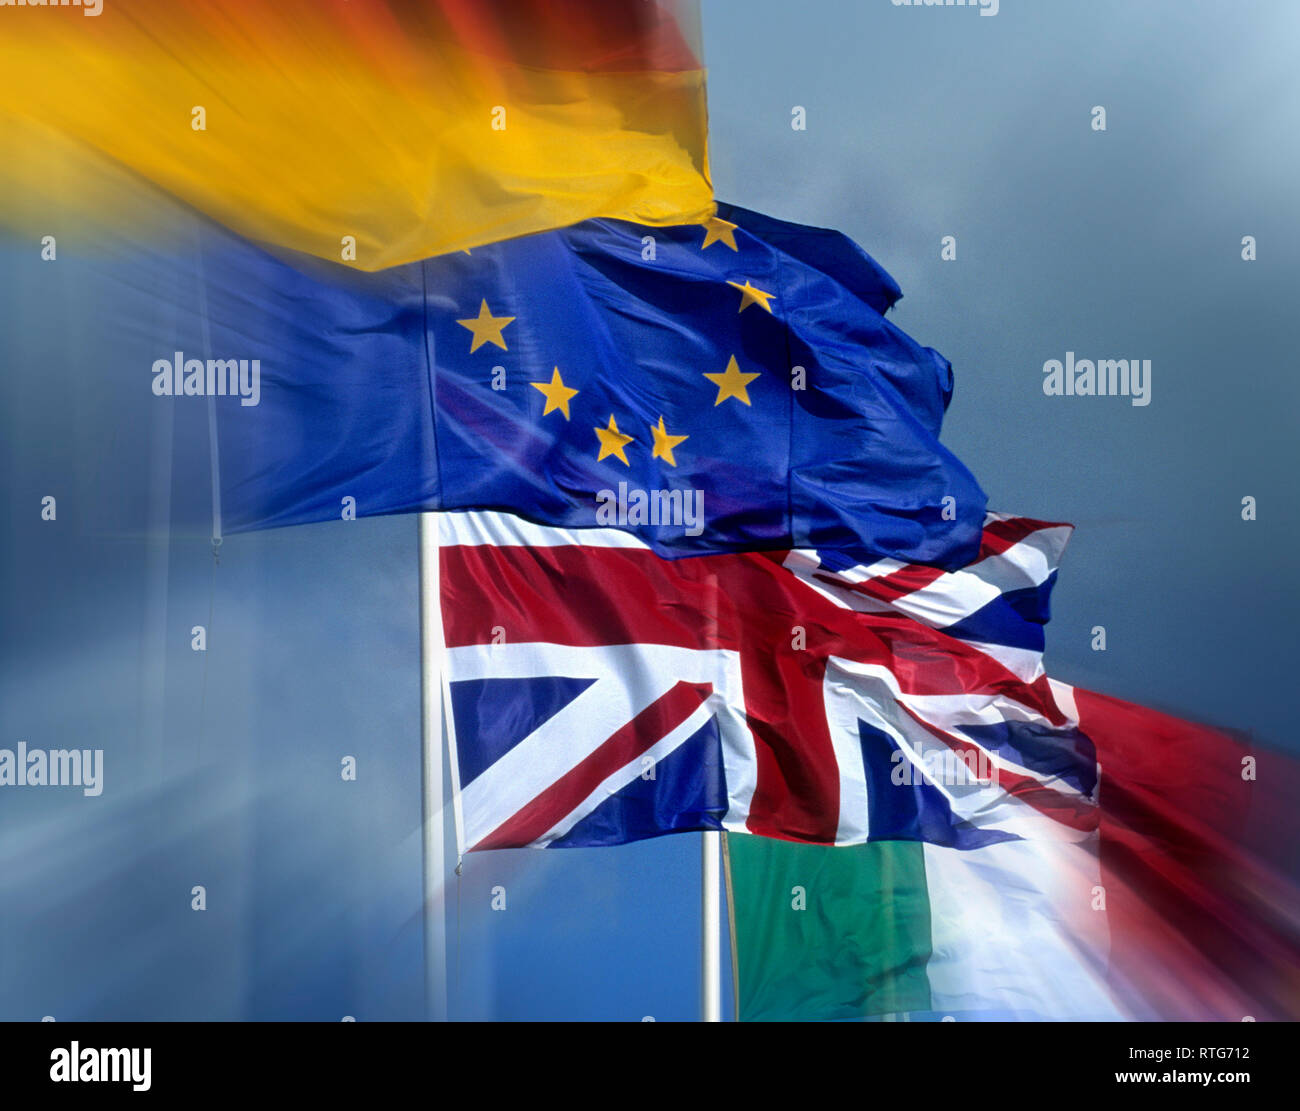 European flags - Stock Image